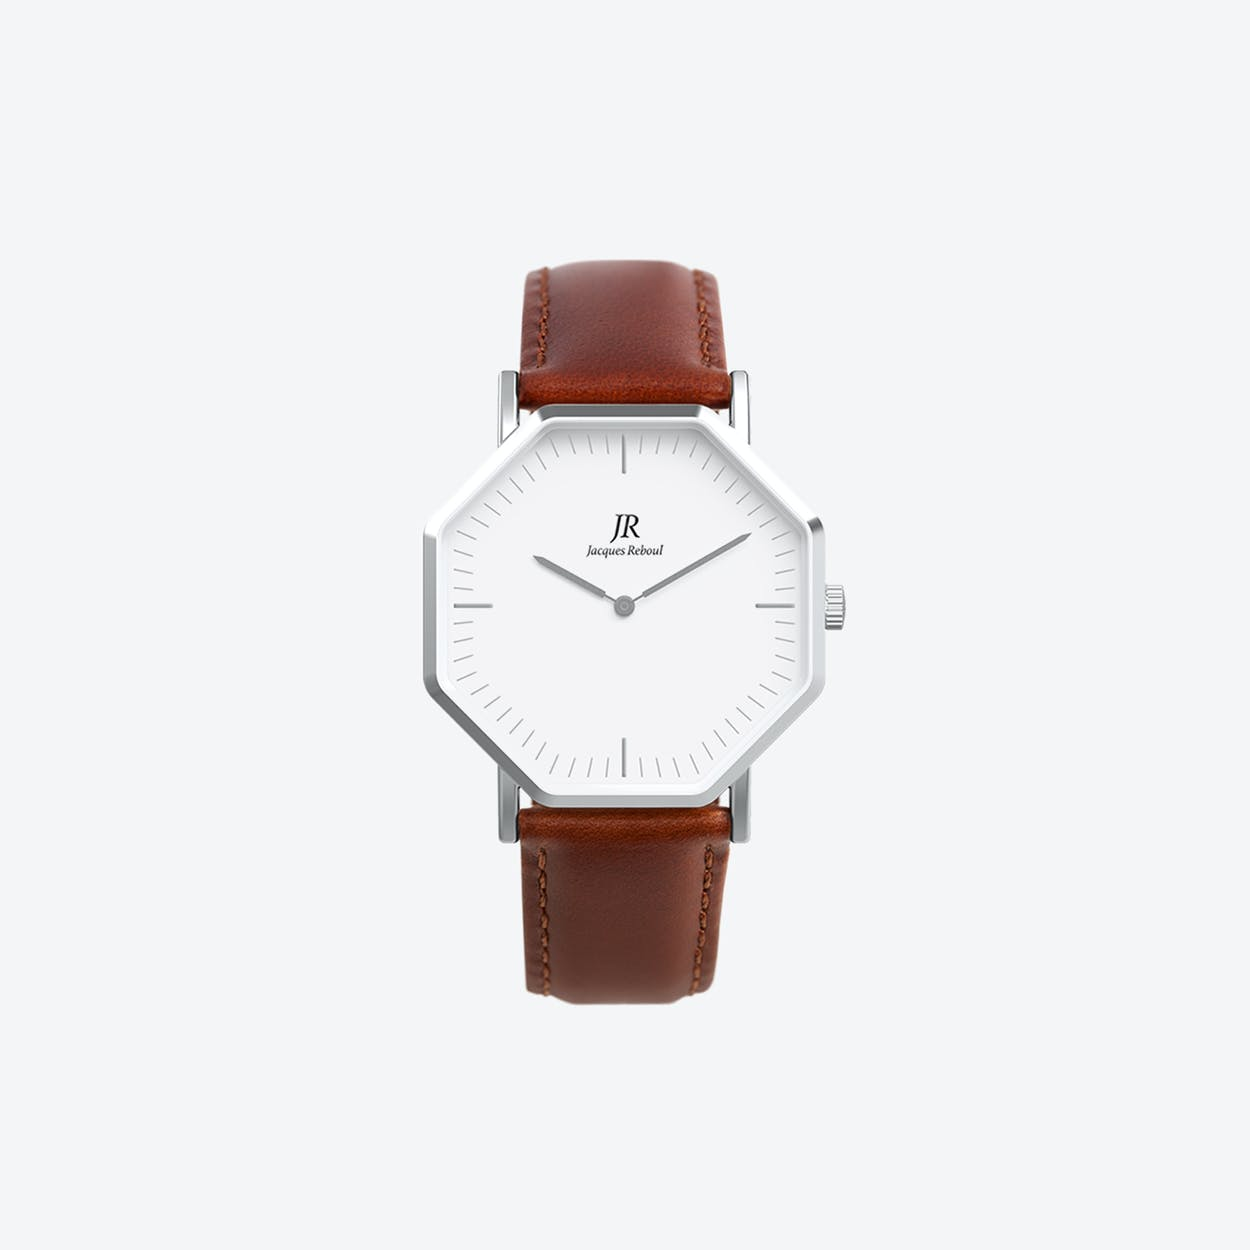 Premier Classic Silver Hexagonal Watch with Brown Leather Strap 41mm